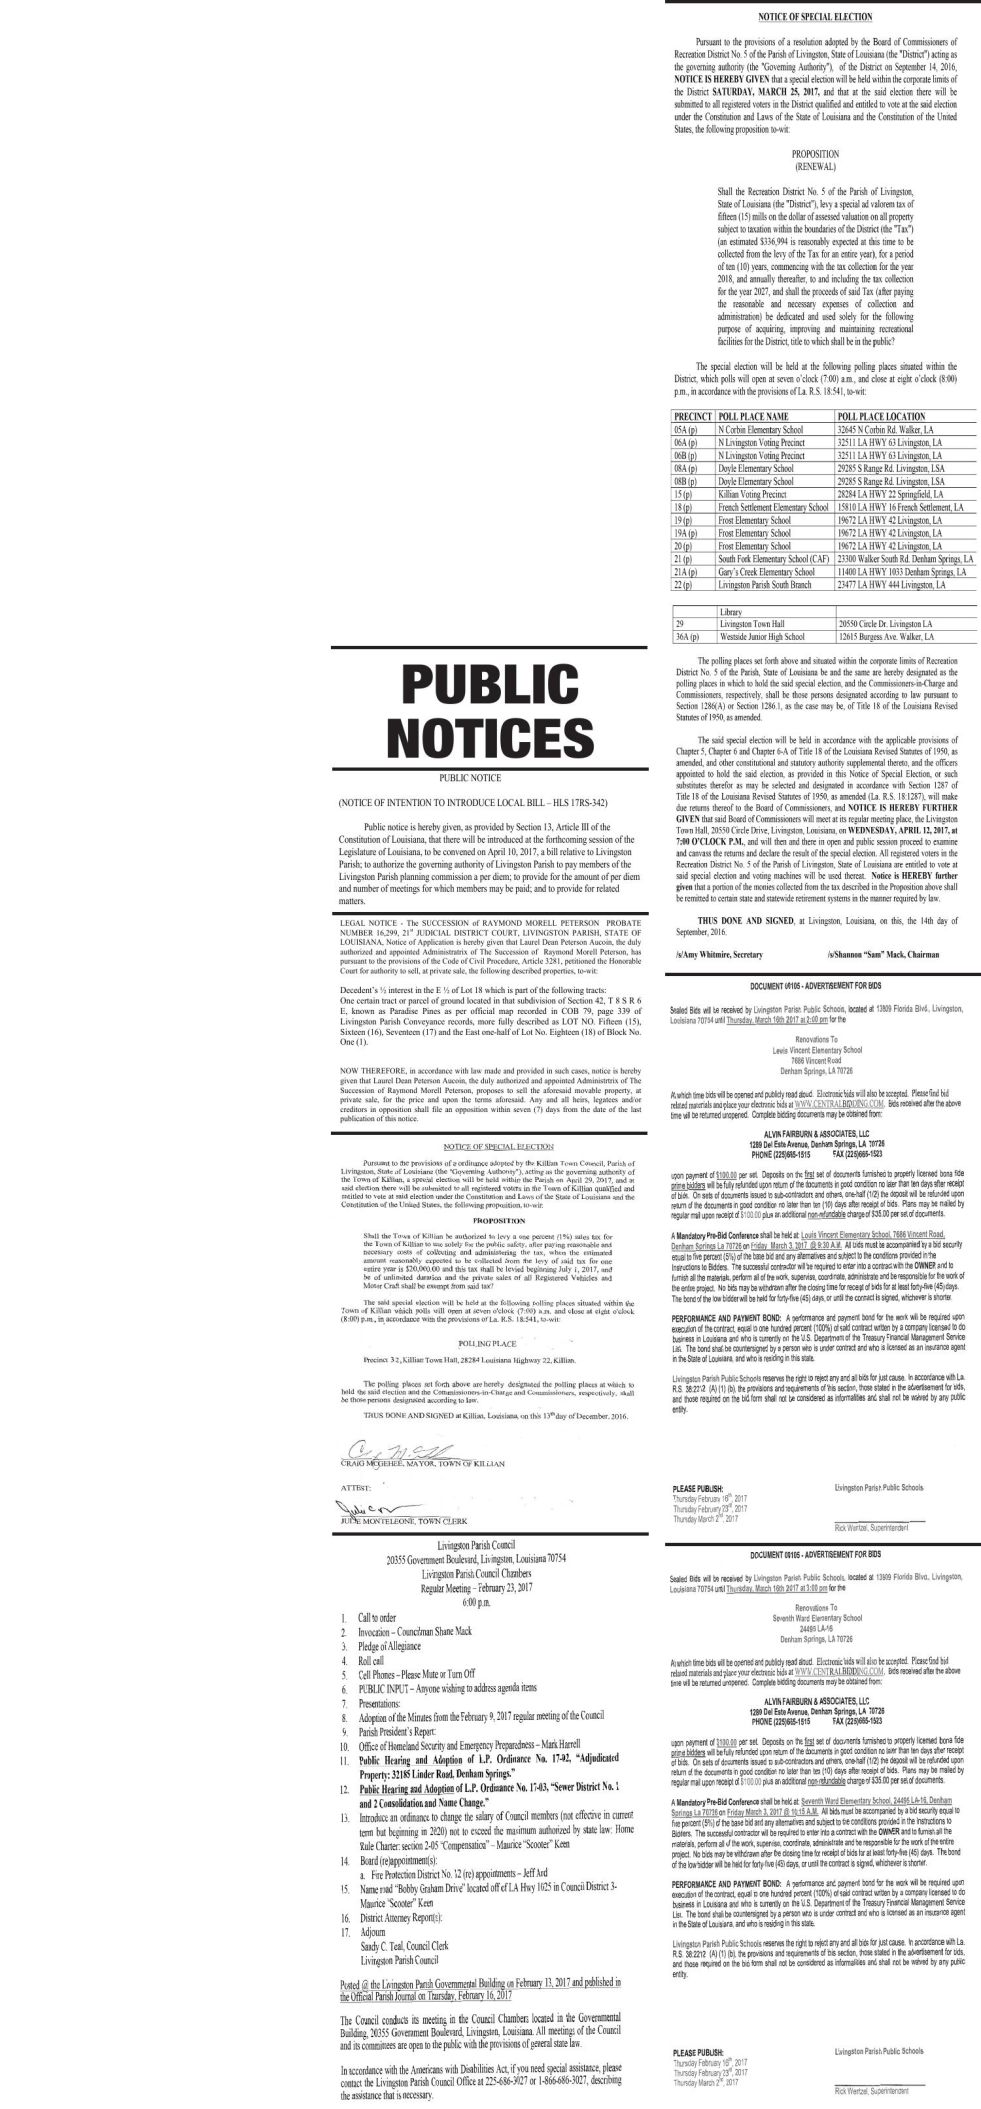 Public Notices published February 16, 2017